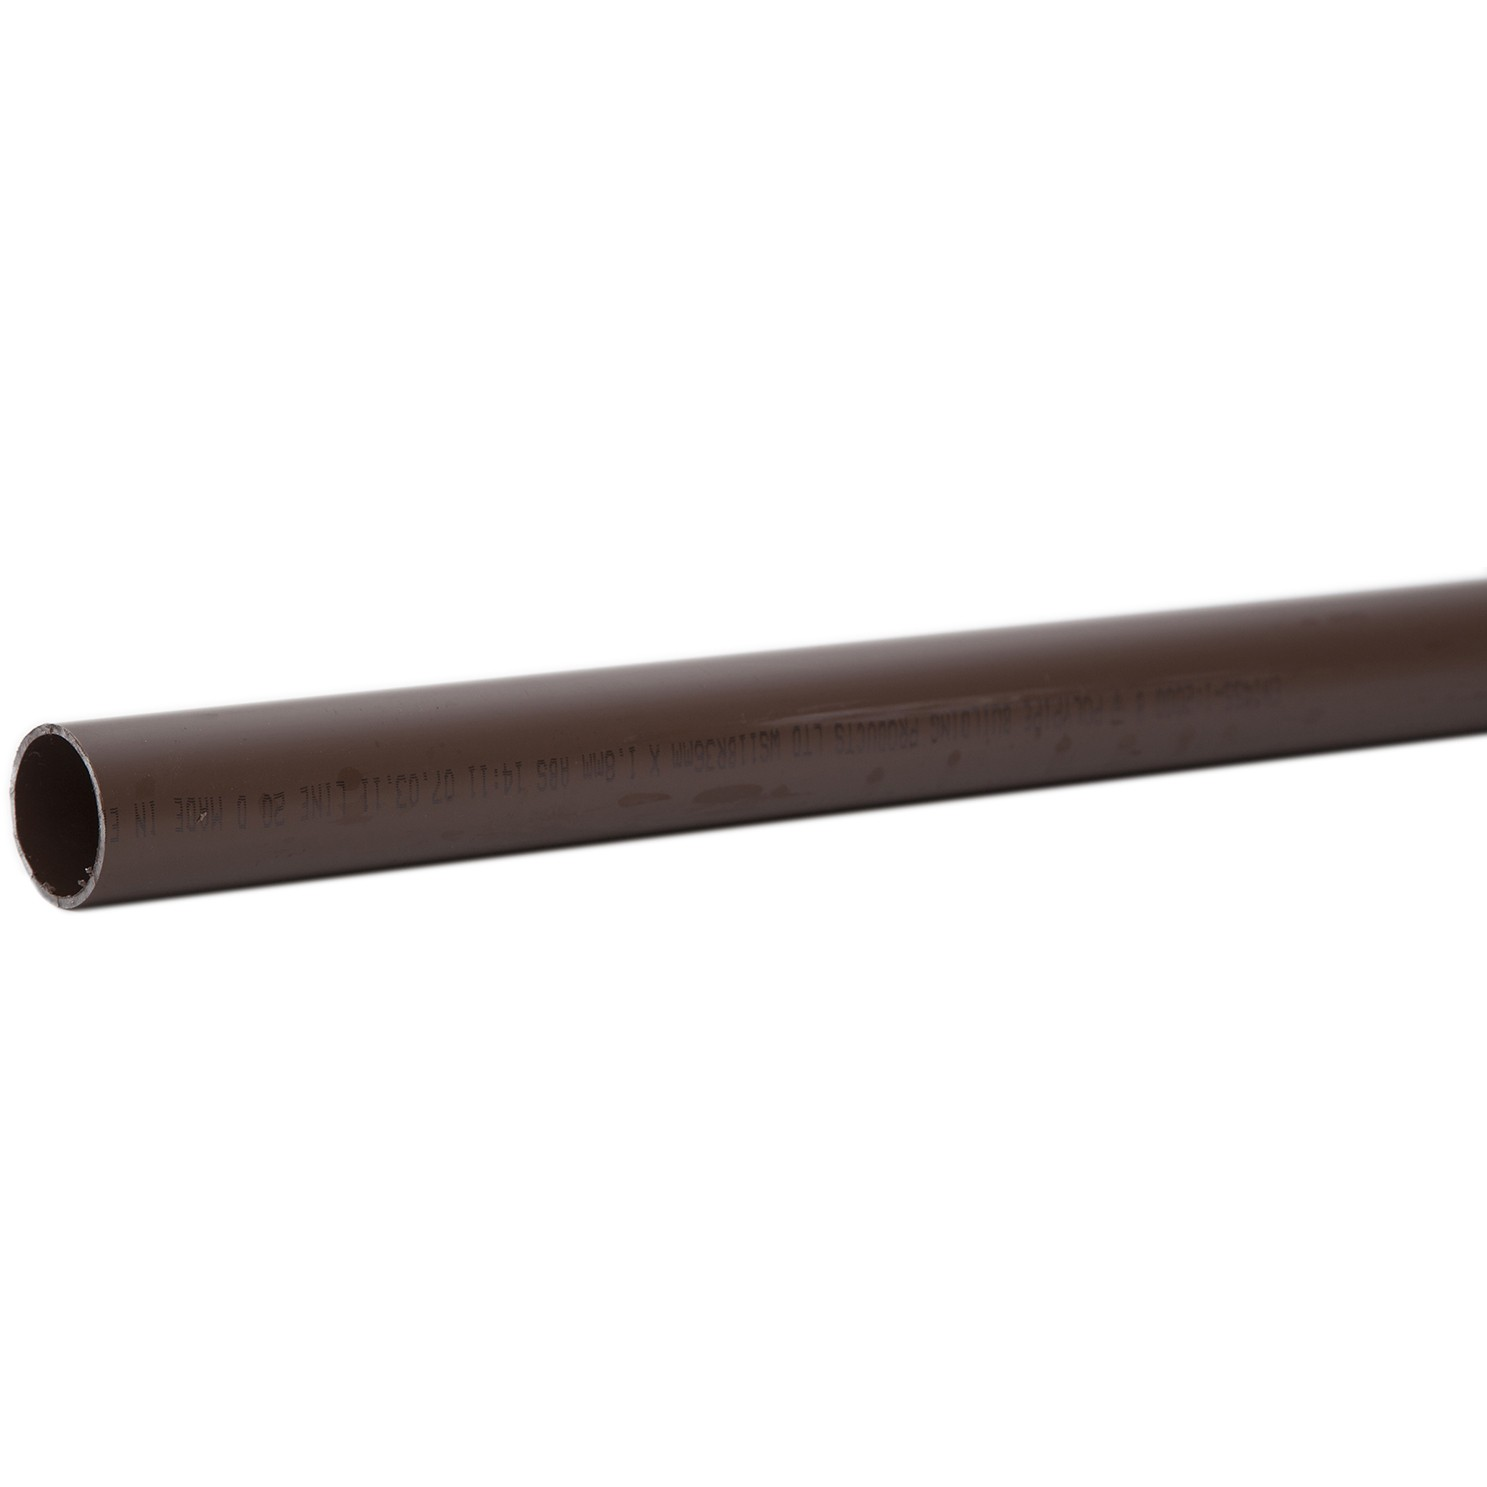 Polypipe 32mm Solvent Weld Waste Pipe (1.5 metre x 2) - Brown